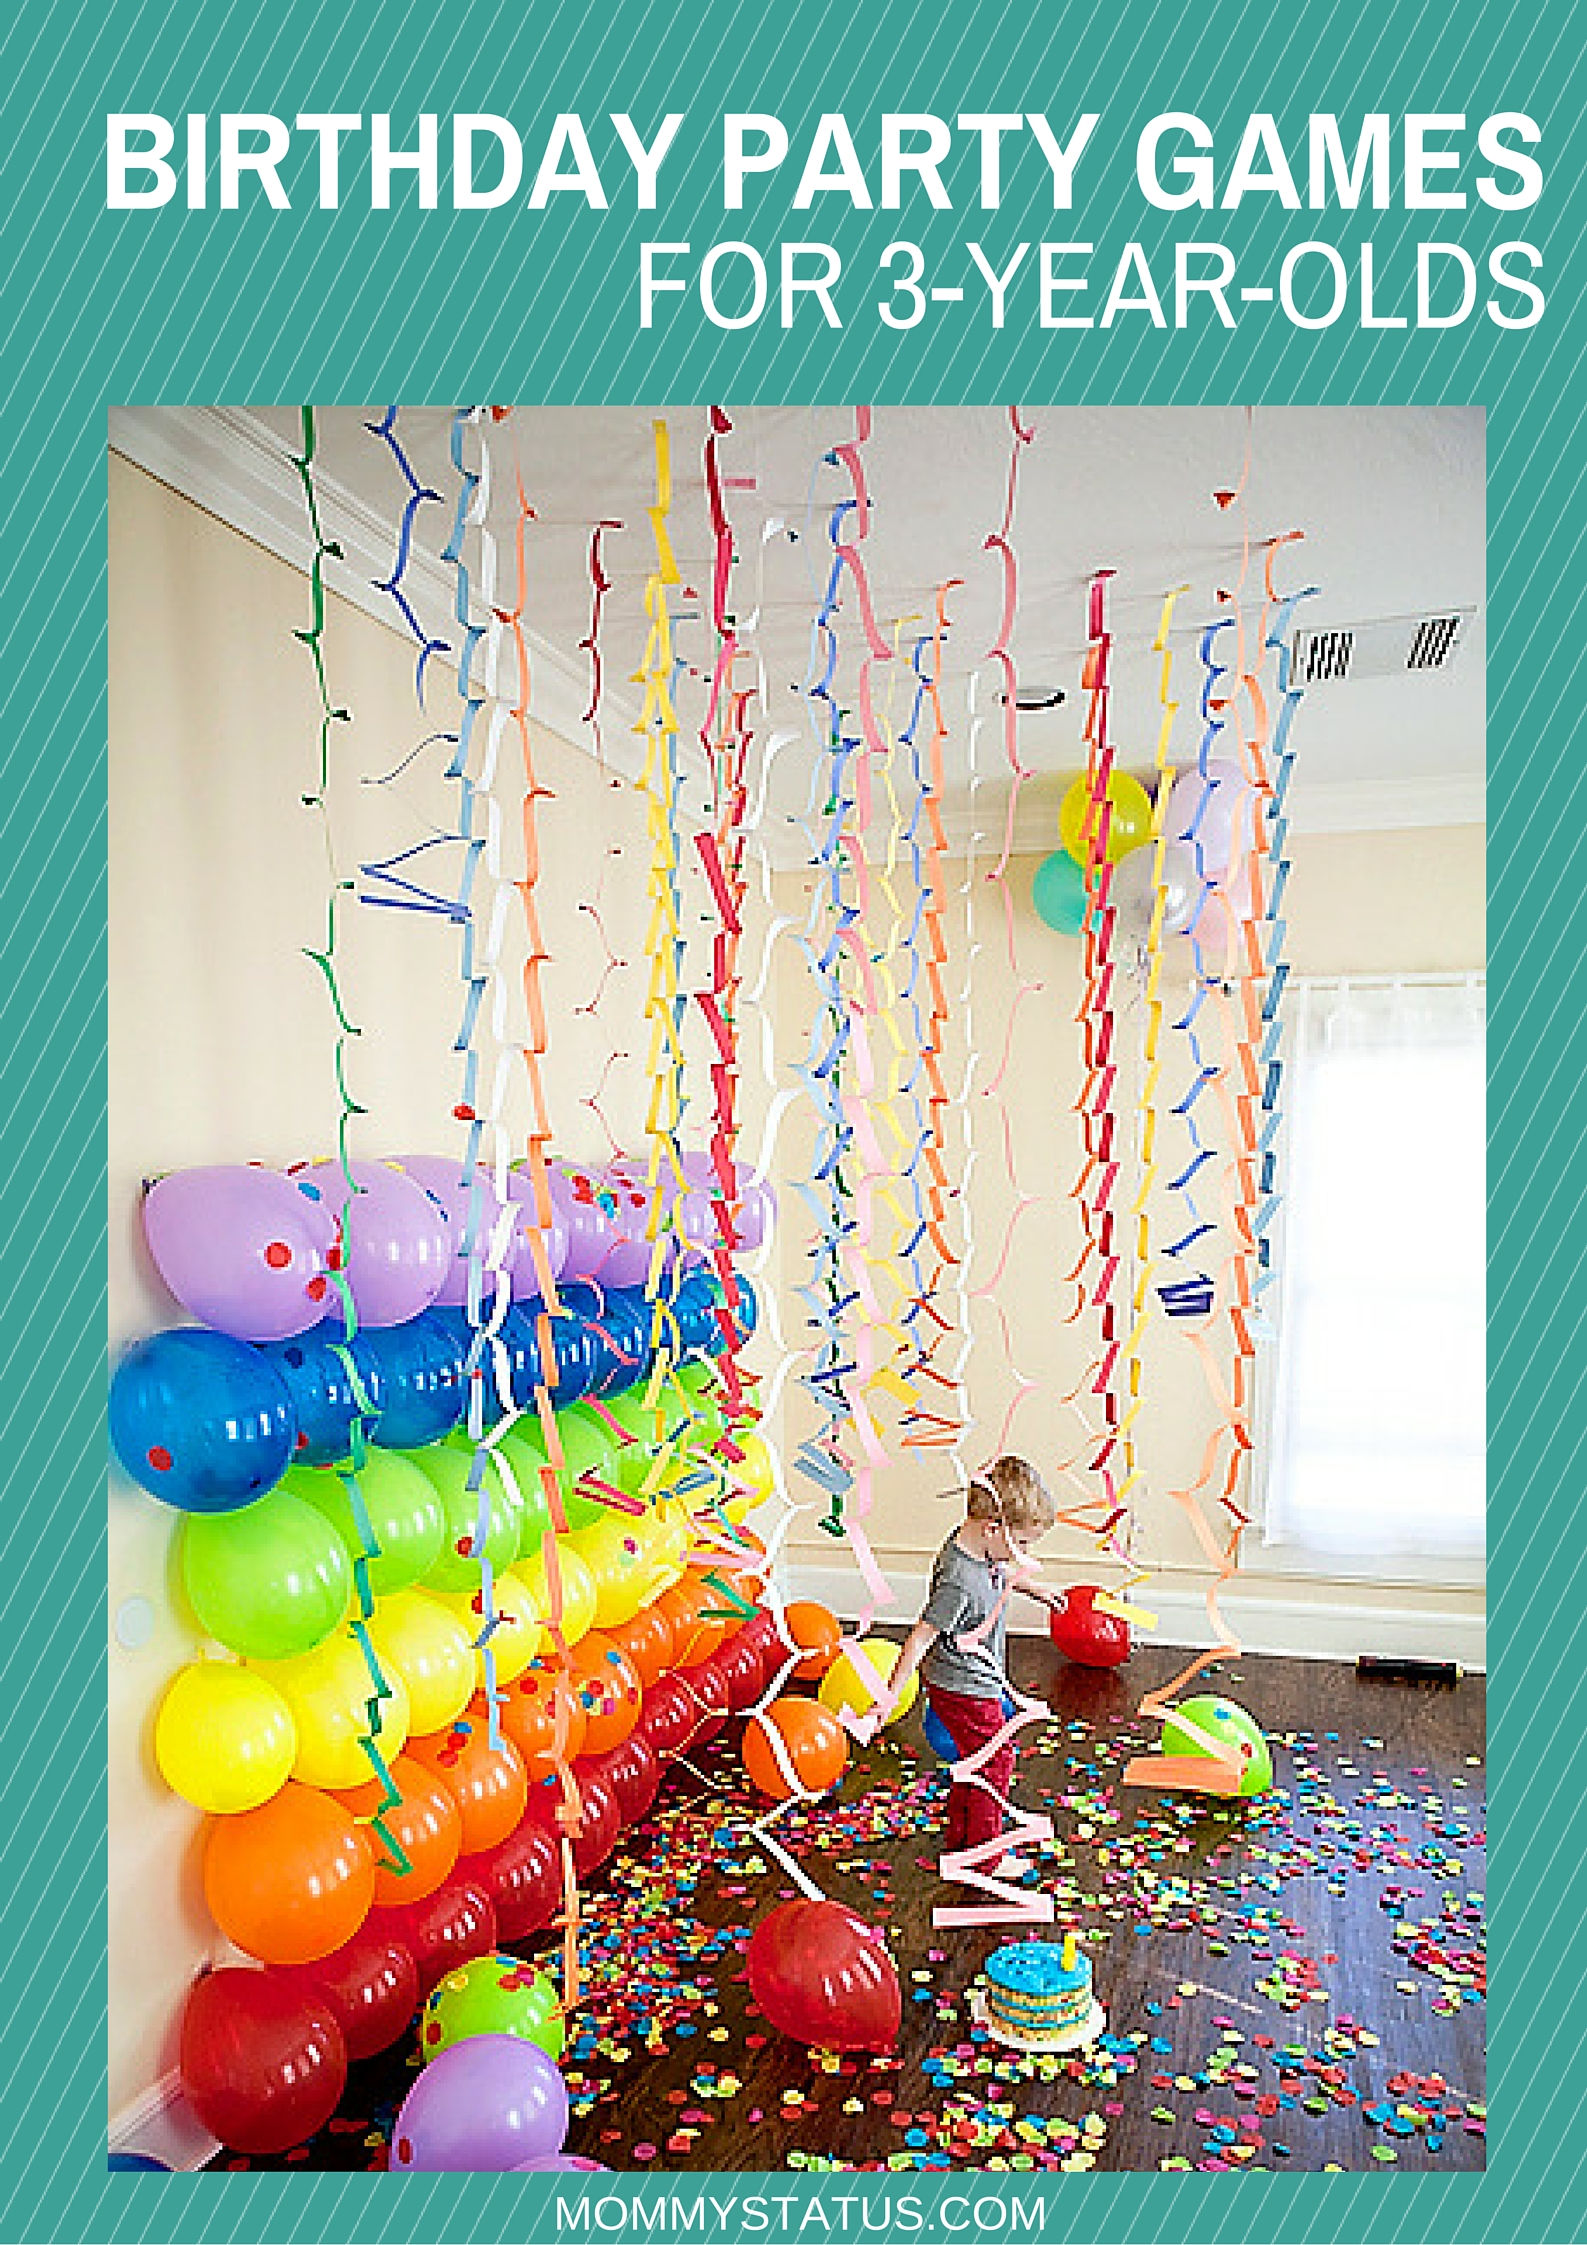 indoor activities for 3 year old birthday party ; indoor%2520birthday%2520party%2520activities%2520;%2520Birthday-Party-Games